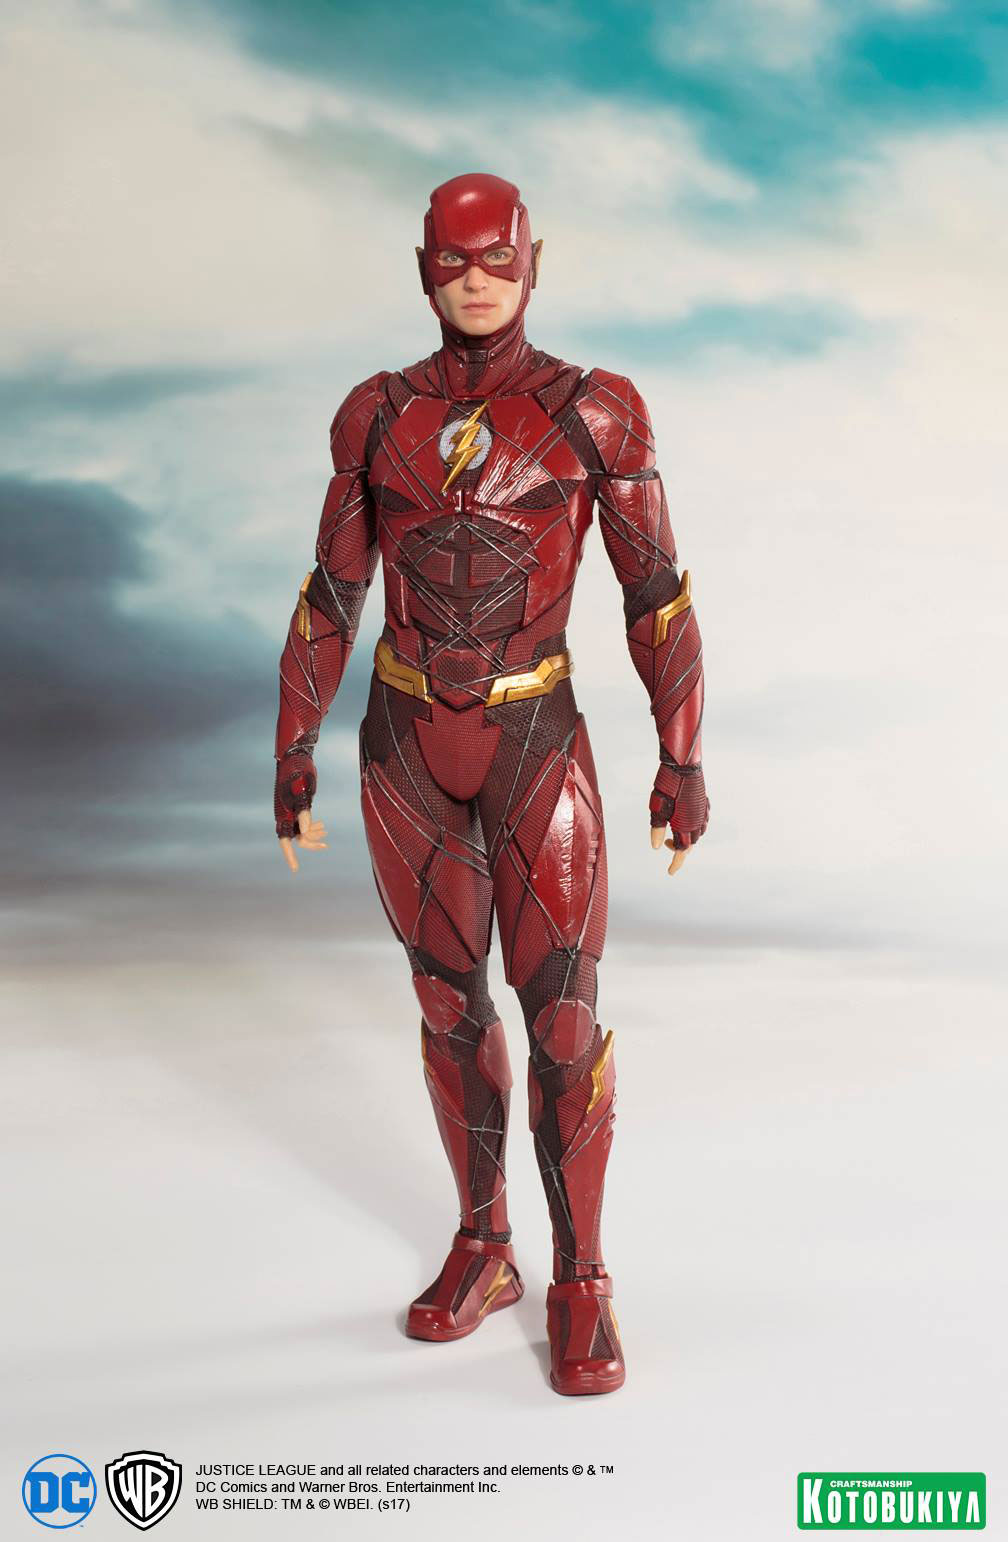 kotobukiya-justice-league-the-flash-statue